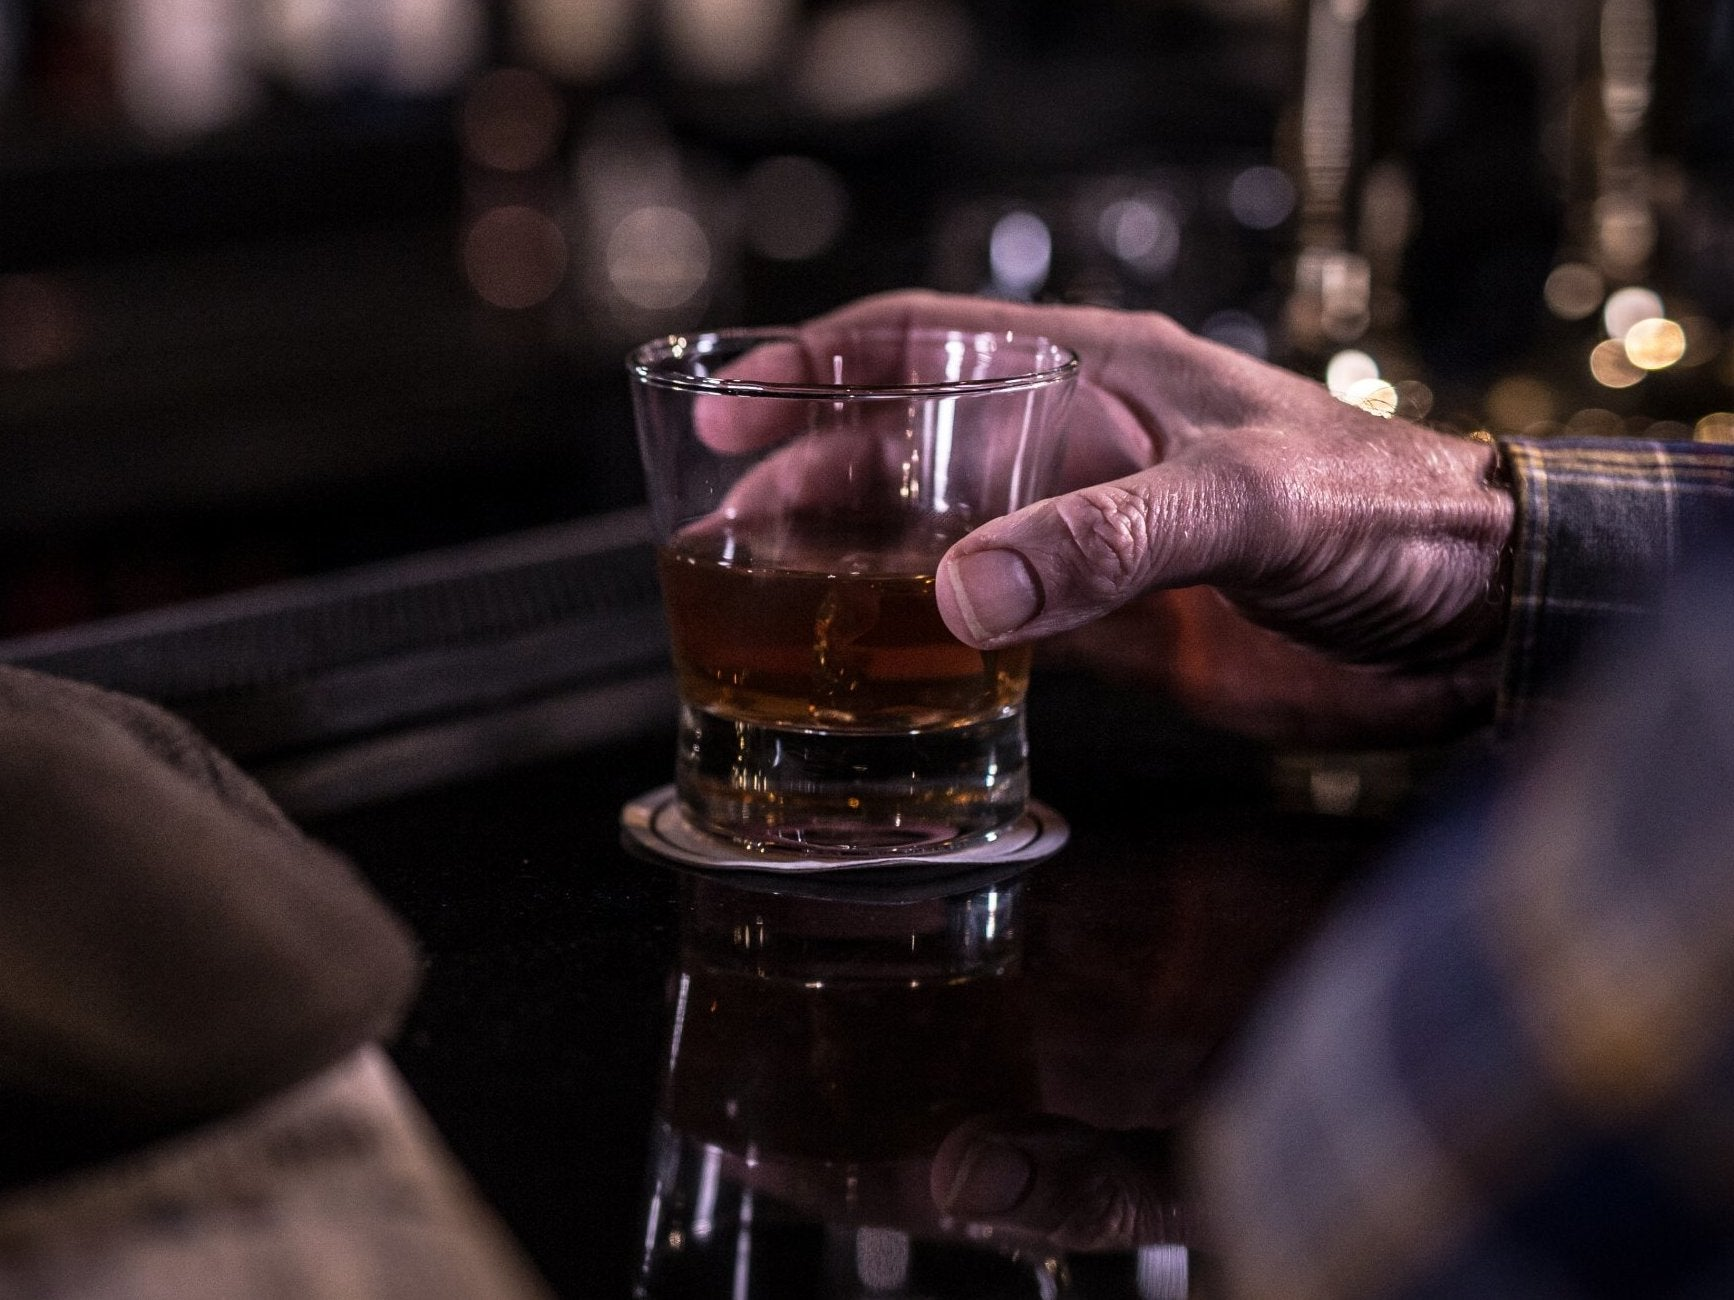 Diabetics up to 10 times more likely to die from alcoholism, study warns